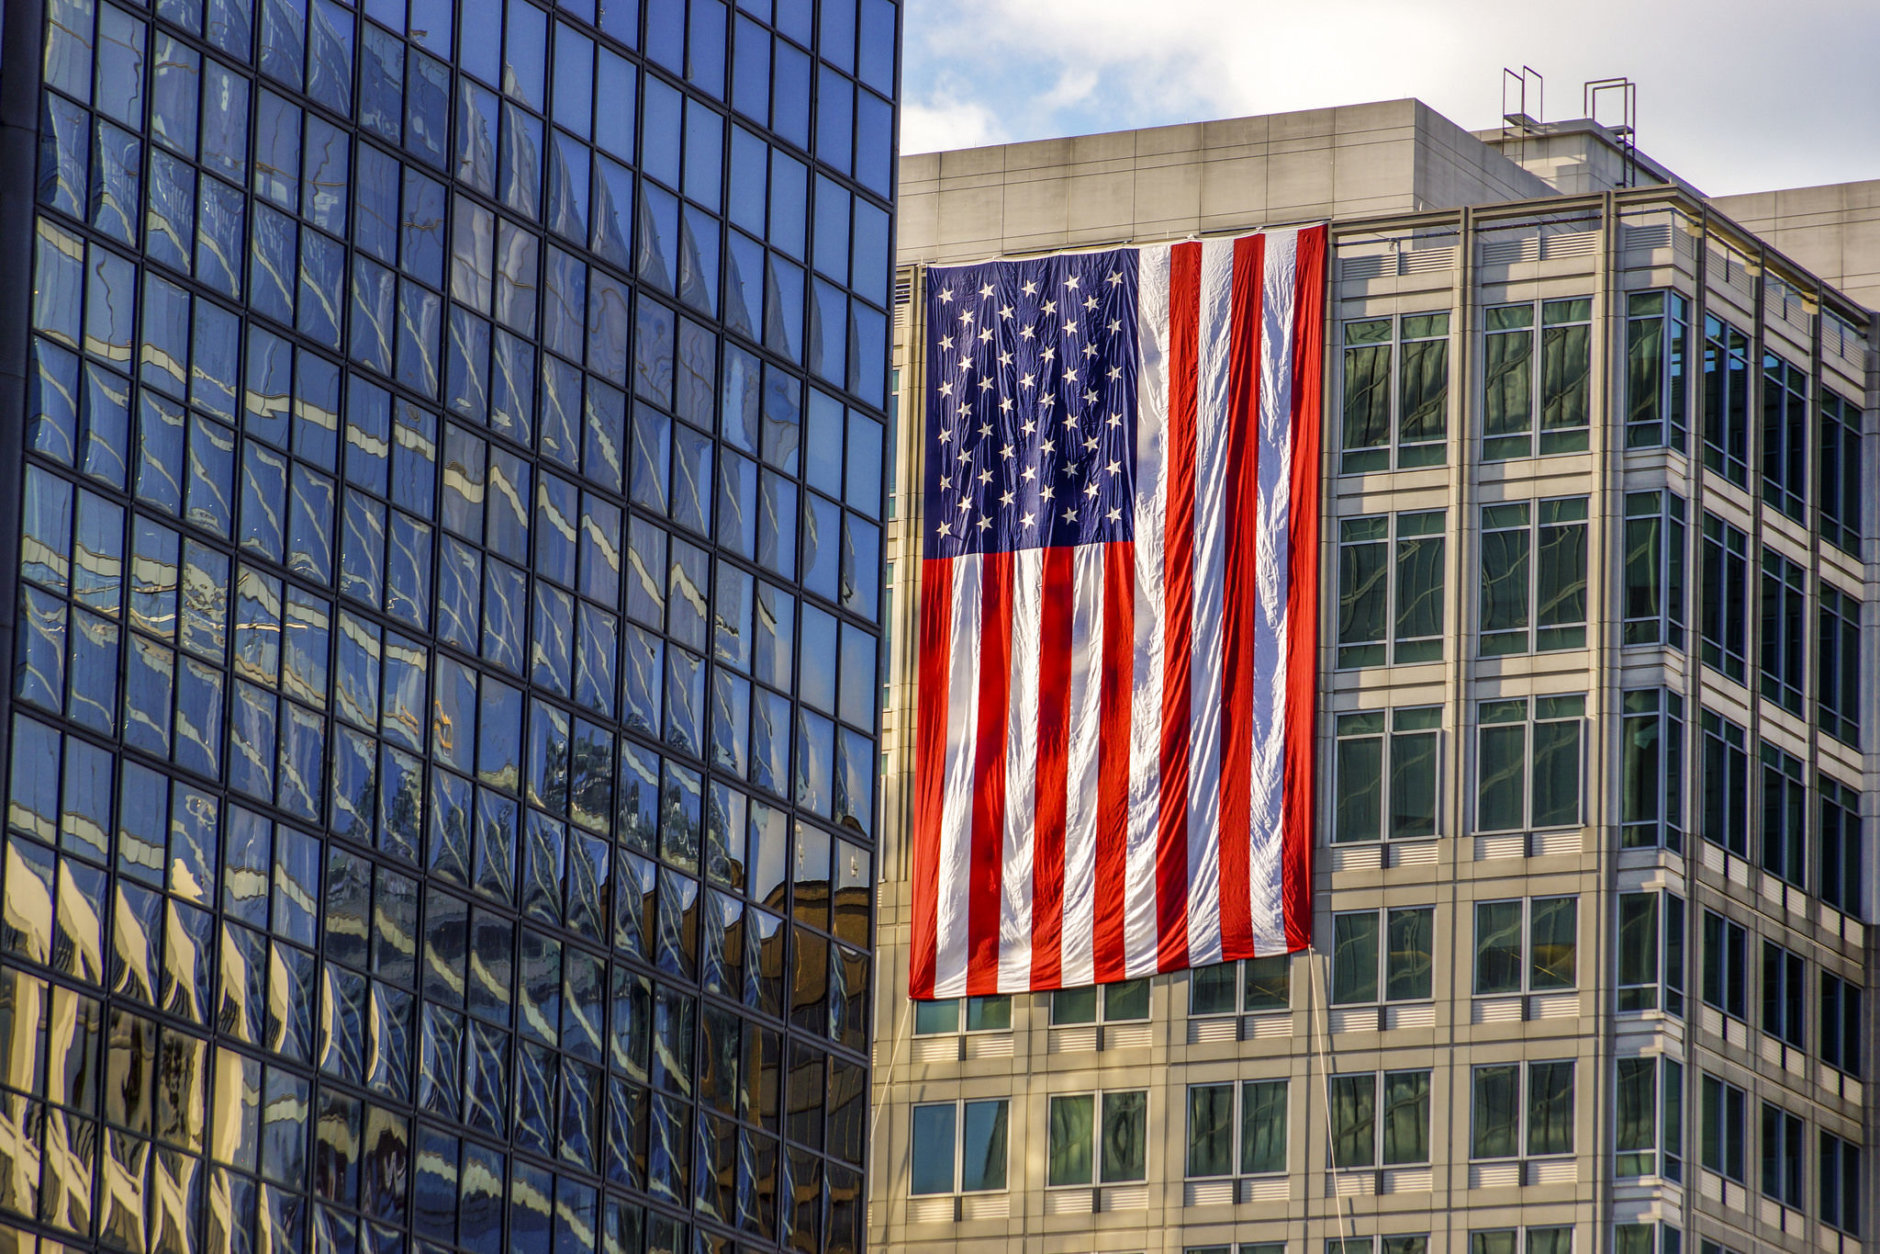 A flag hangs in Rosslyn, Va. on the anniversary of the Sept. 11 terrorist attacks in Arlington and New York City. (Courtesy Rosslyn Business Improvement District)